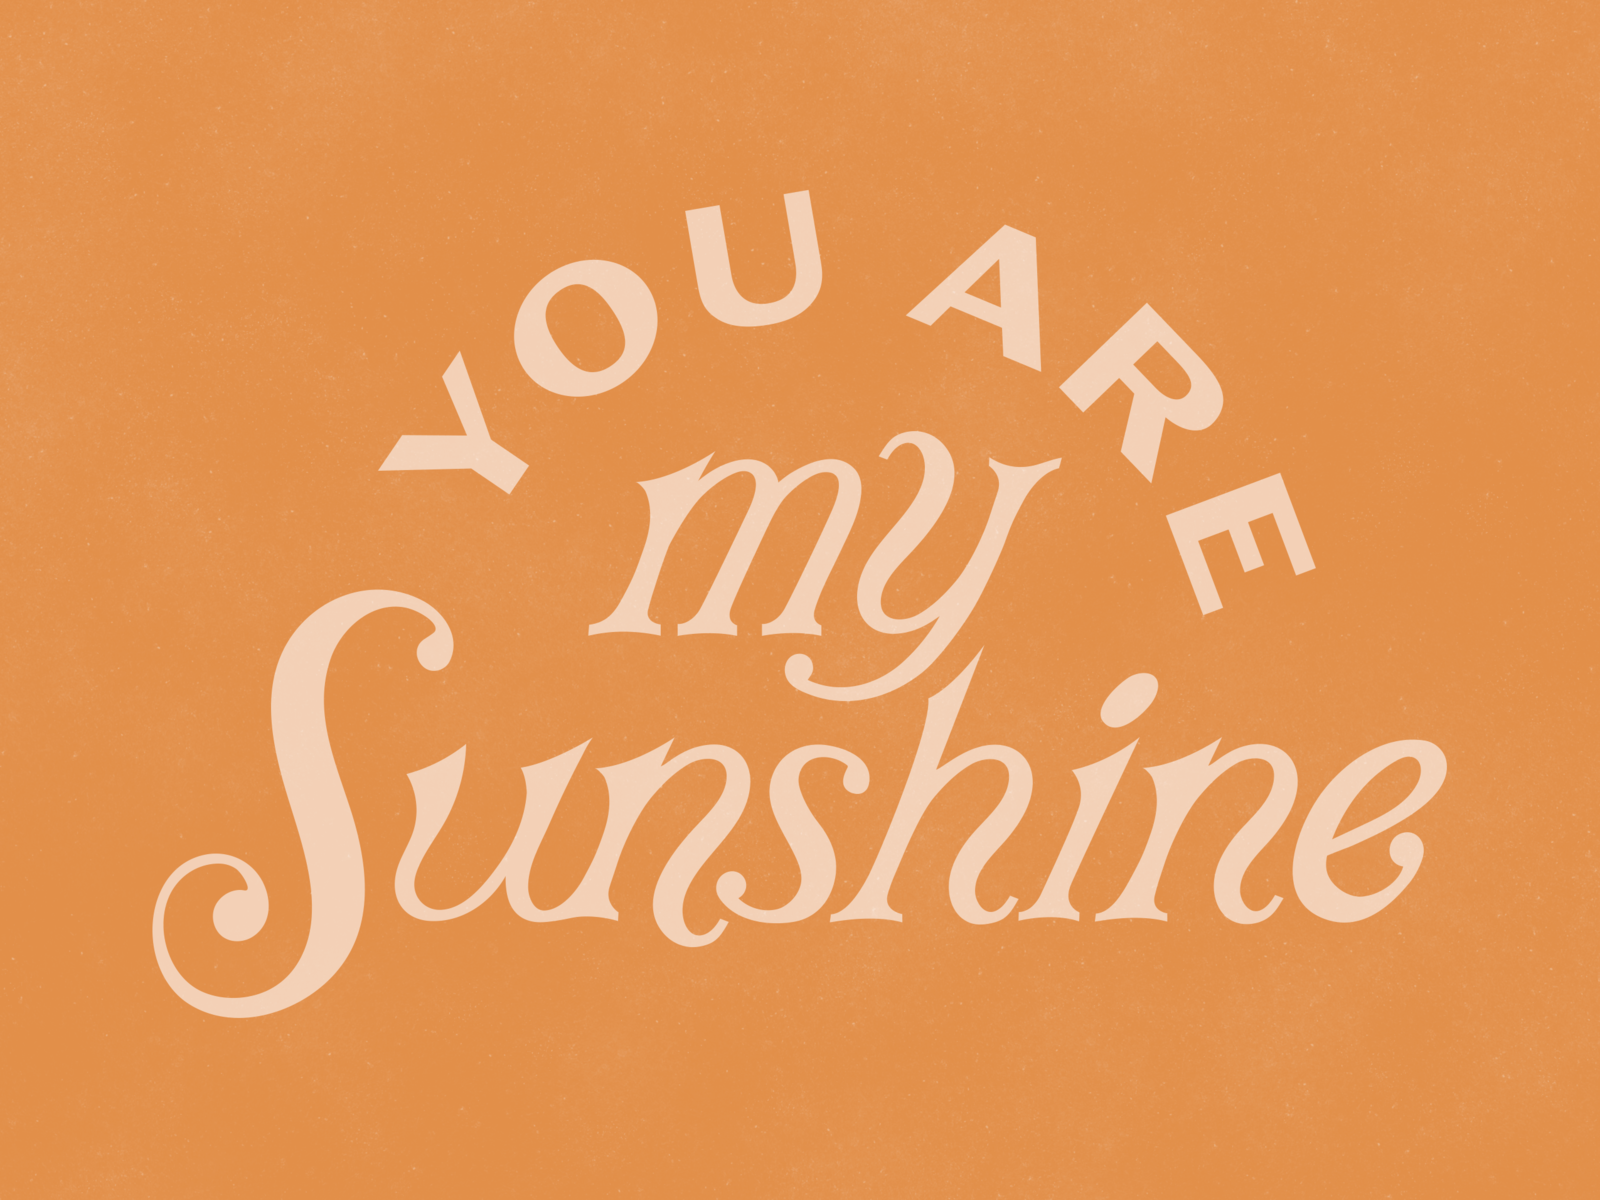 You Are My Sunshine By Blake Watts On Dribbble